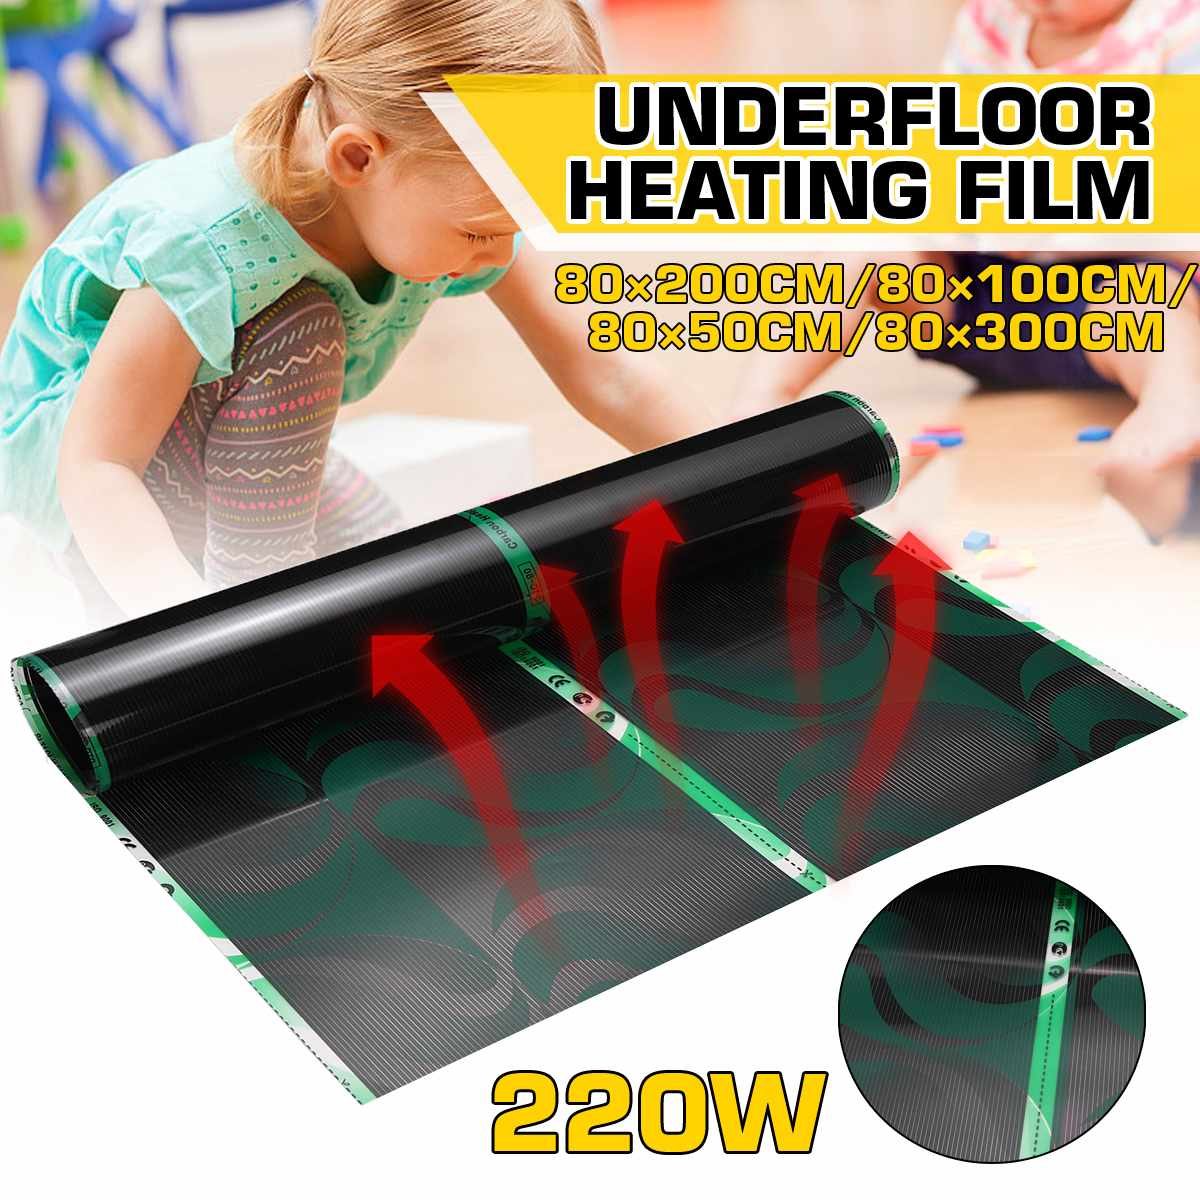 80cm Infrared Underfloor Foil Warming Mat Electric Heating Film 220V 220W Floor Heating Systems & Parts Living Room Warm Mat